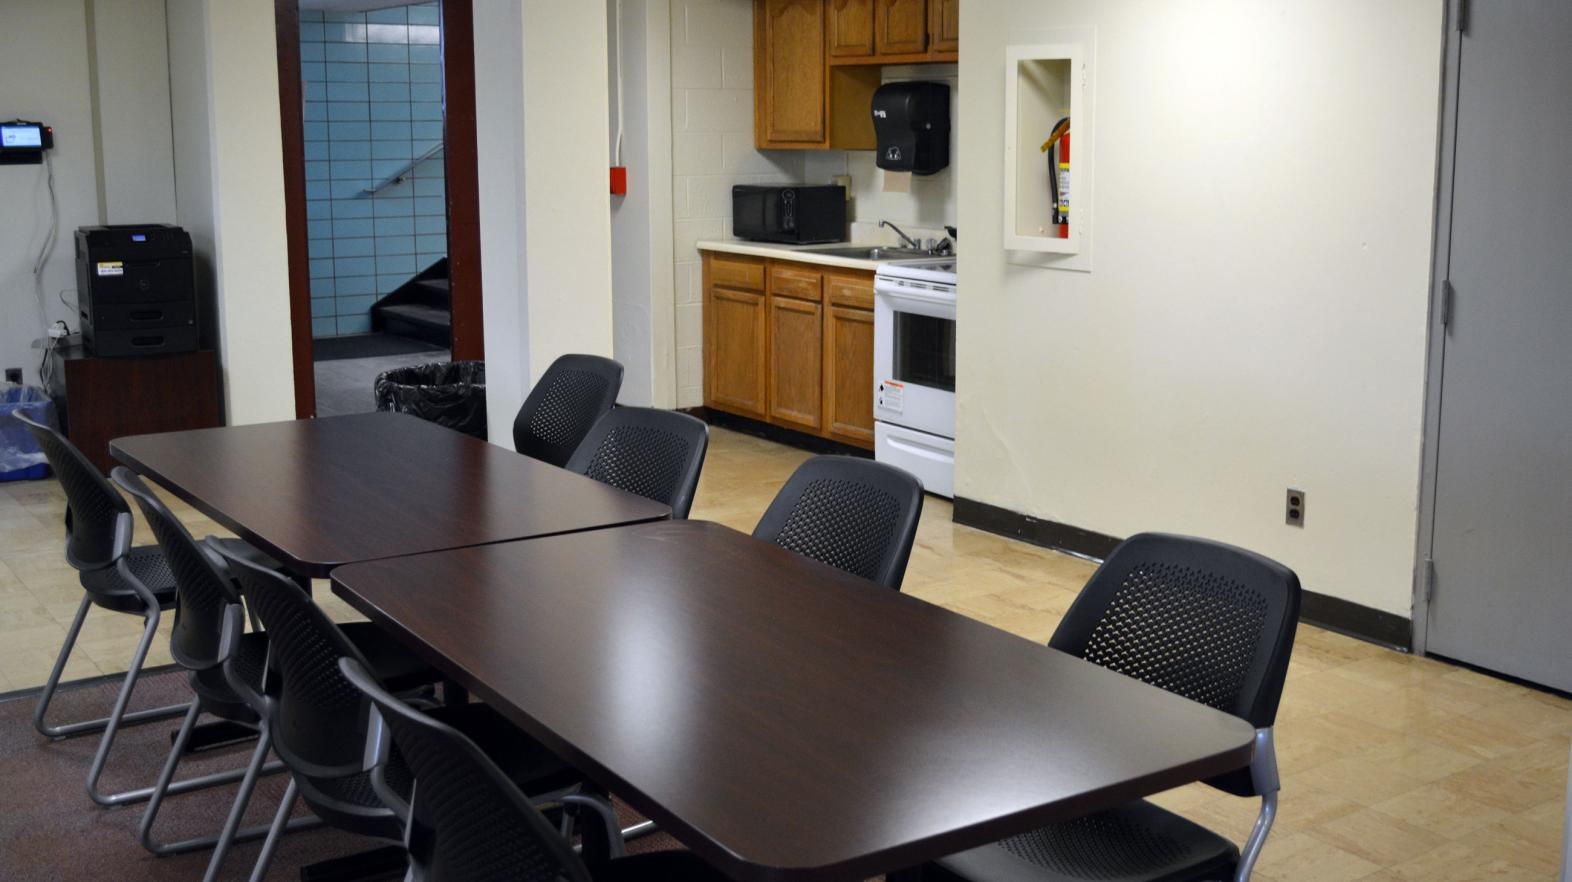 The common area, including kitchen, in Massasoit residence hall.